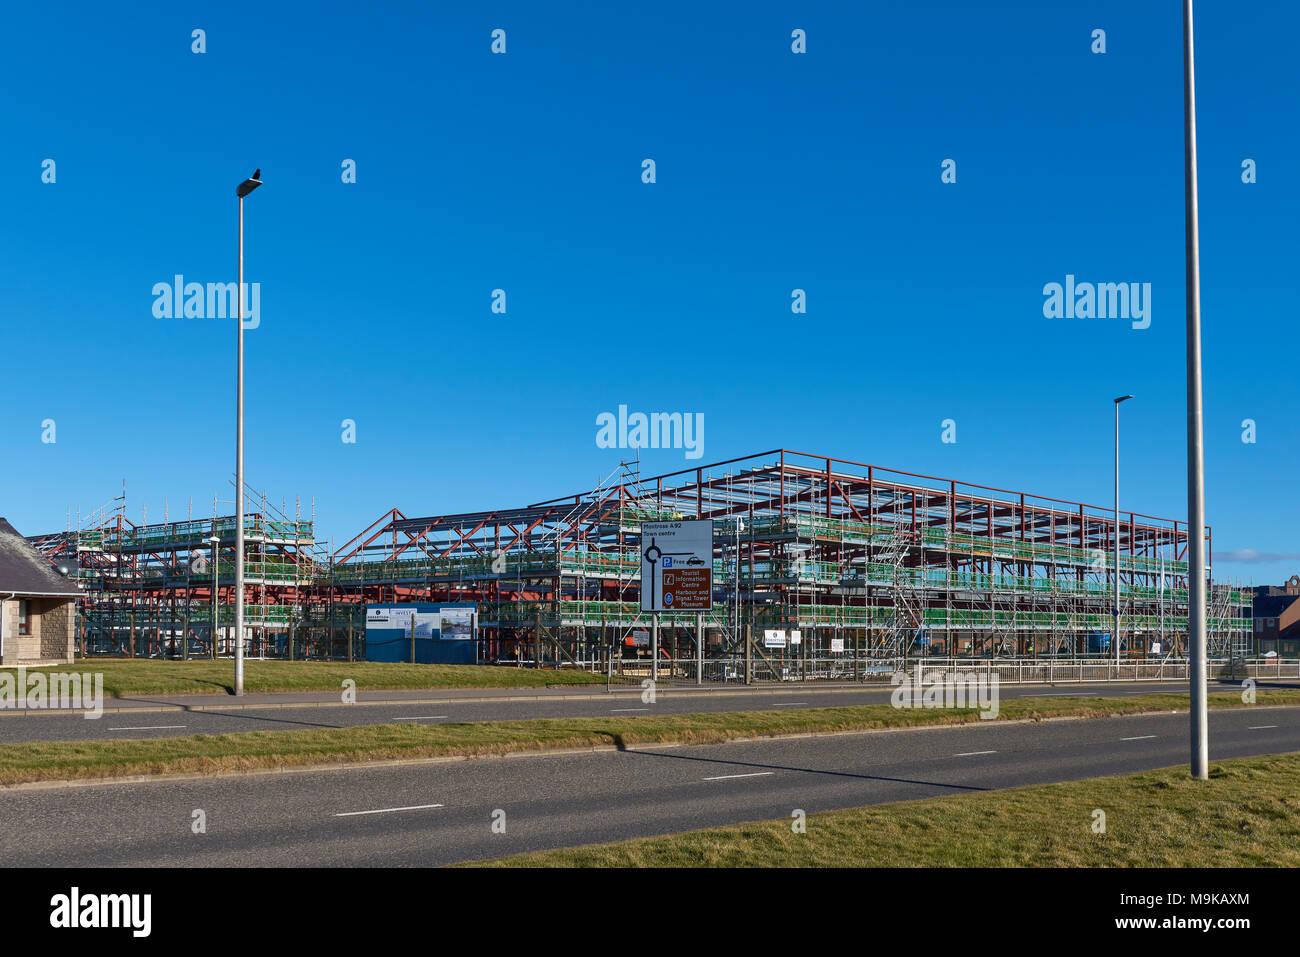 The new Ladyloan Primary School, designed by Nathan Miller Architects and built by Robertsons of Tayside, being built in Arbroath, Scotland. - Stock Image